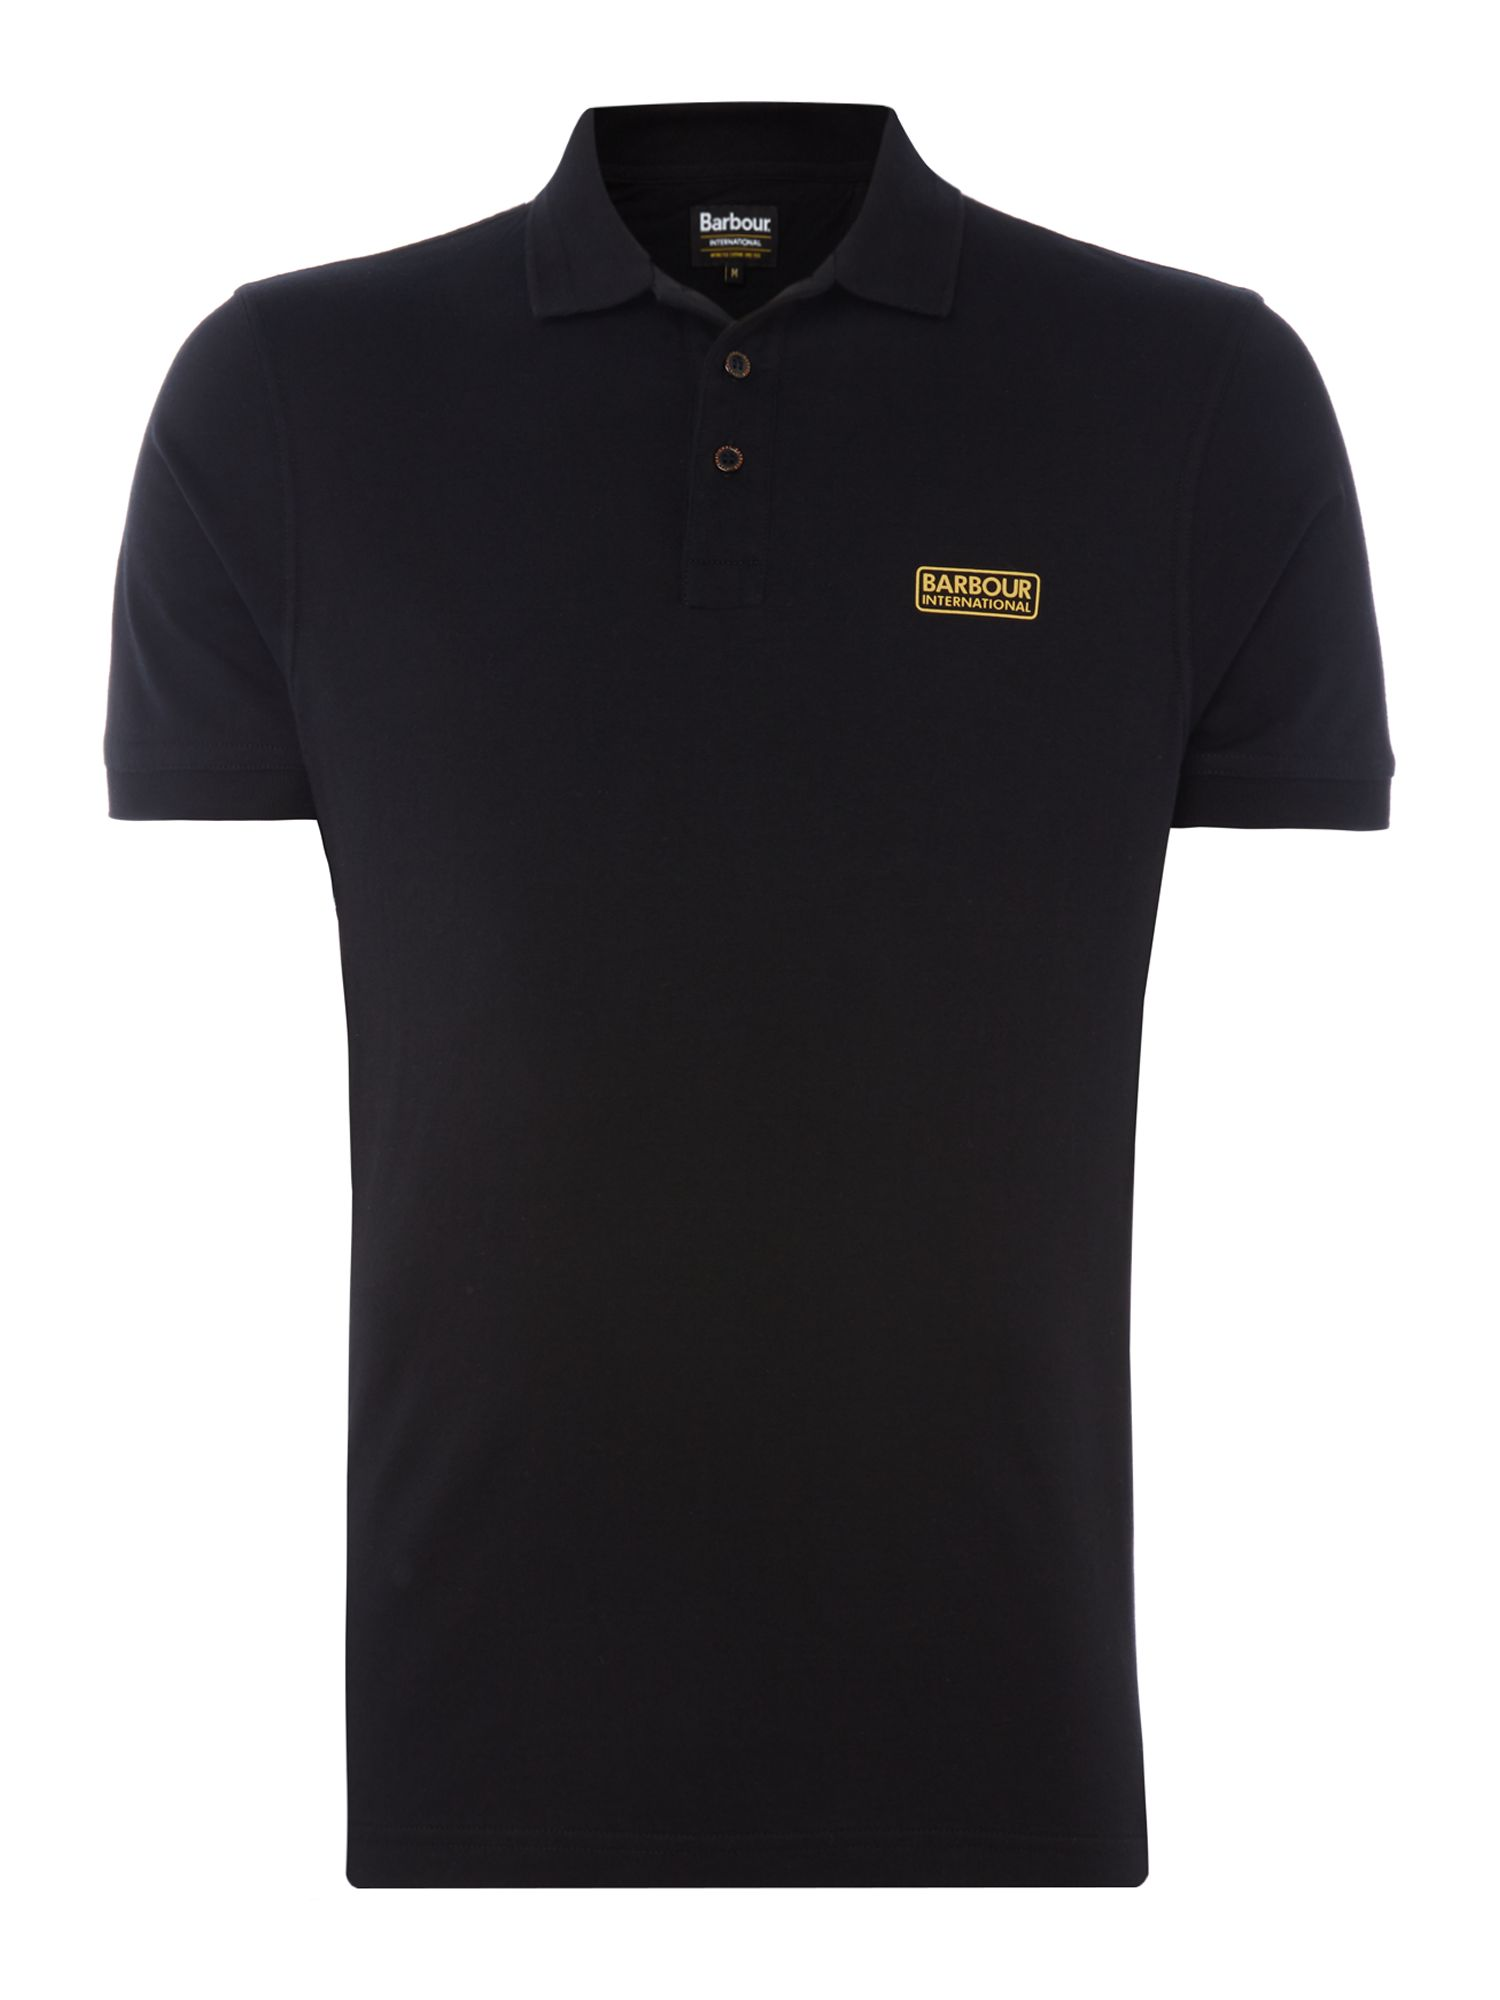 Men's Barbour Kick short sleeve polo, Black